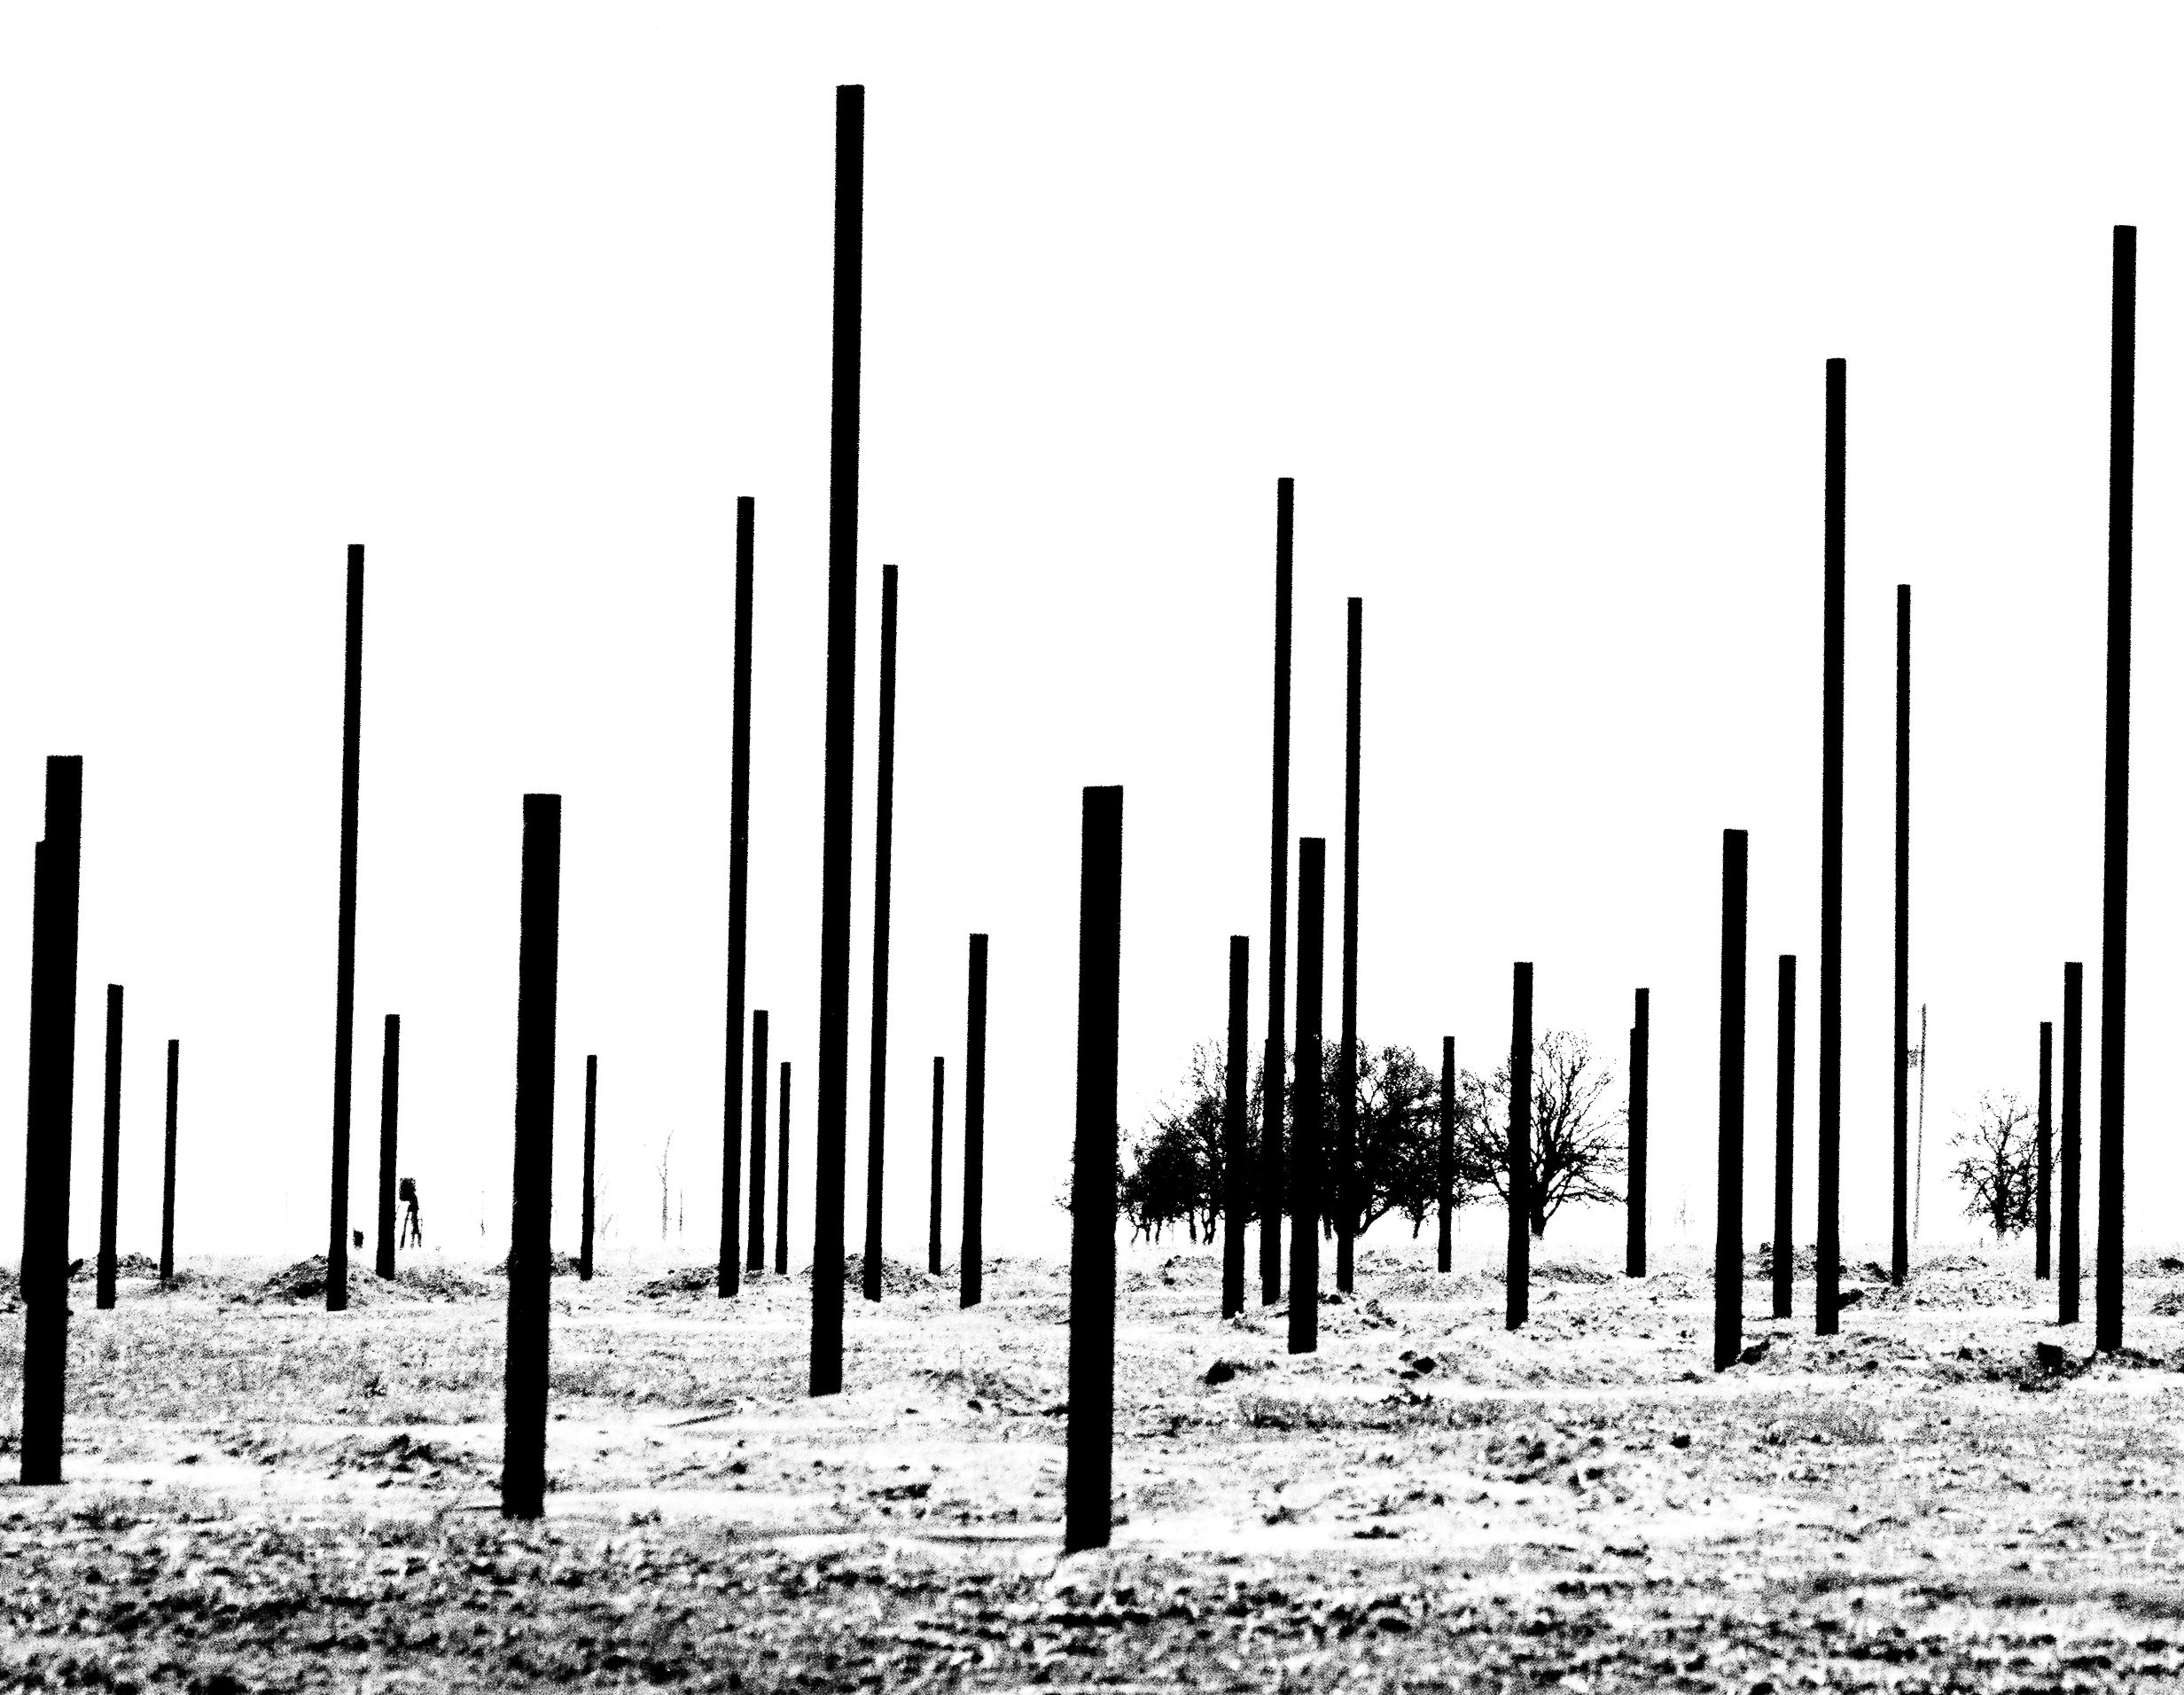 A black and white photograph depicts a prairie with scrubby trees, including numerous poles jutting out from the ground